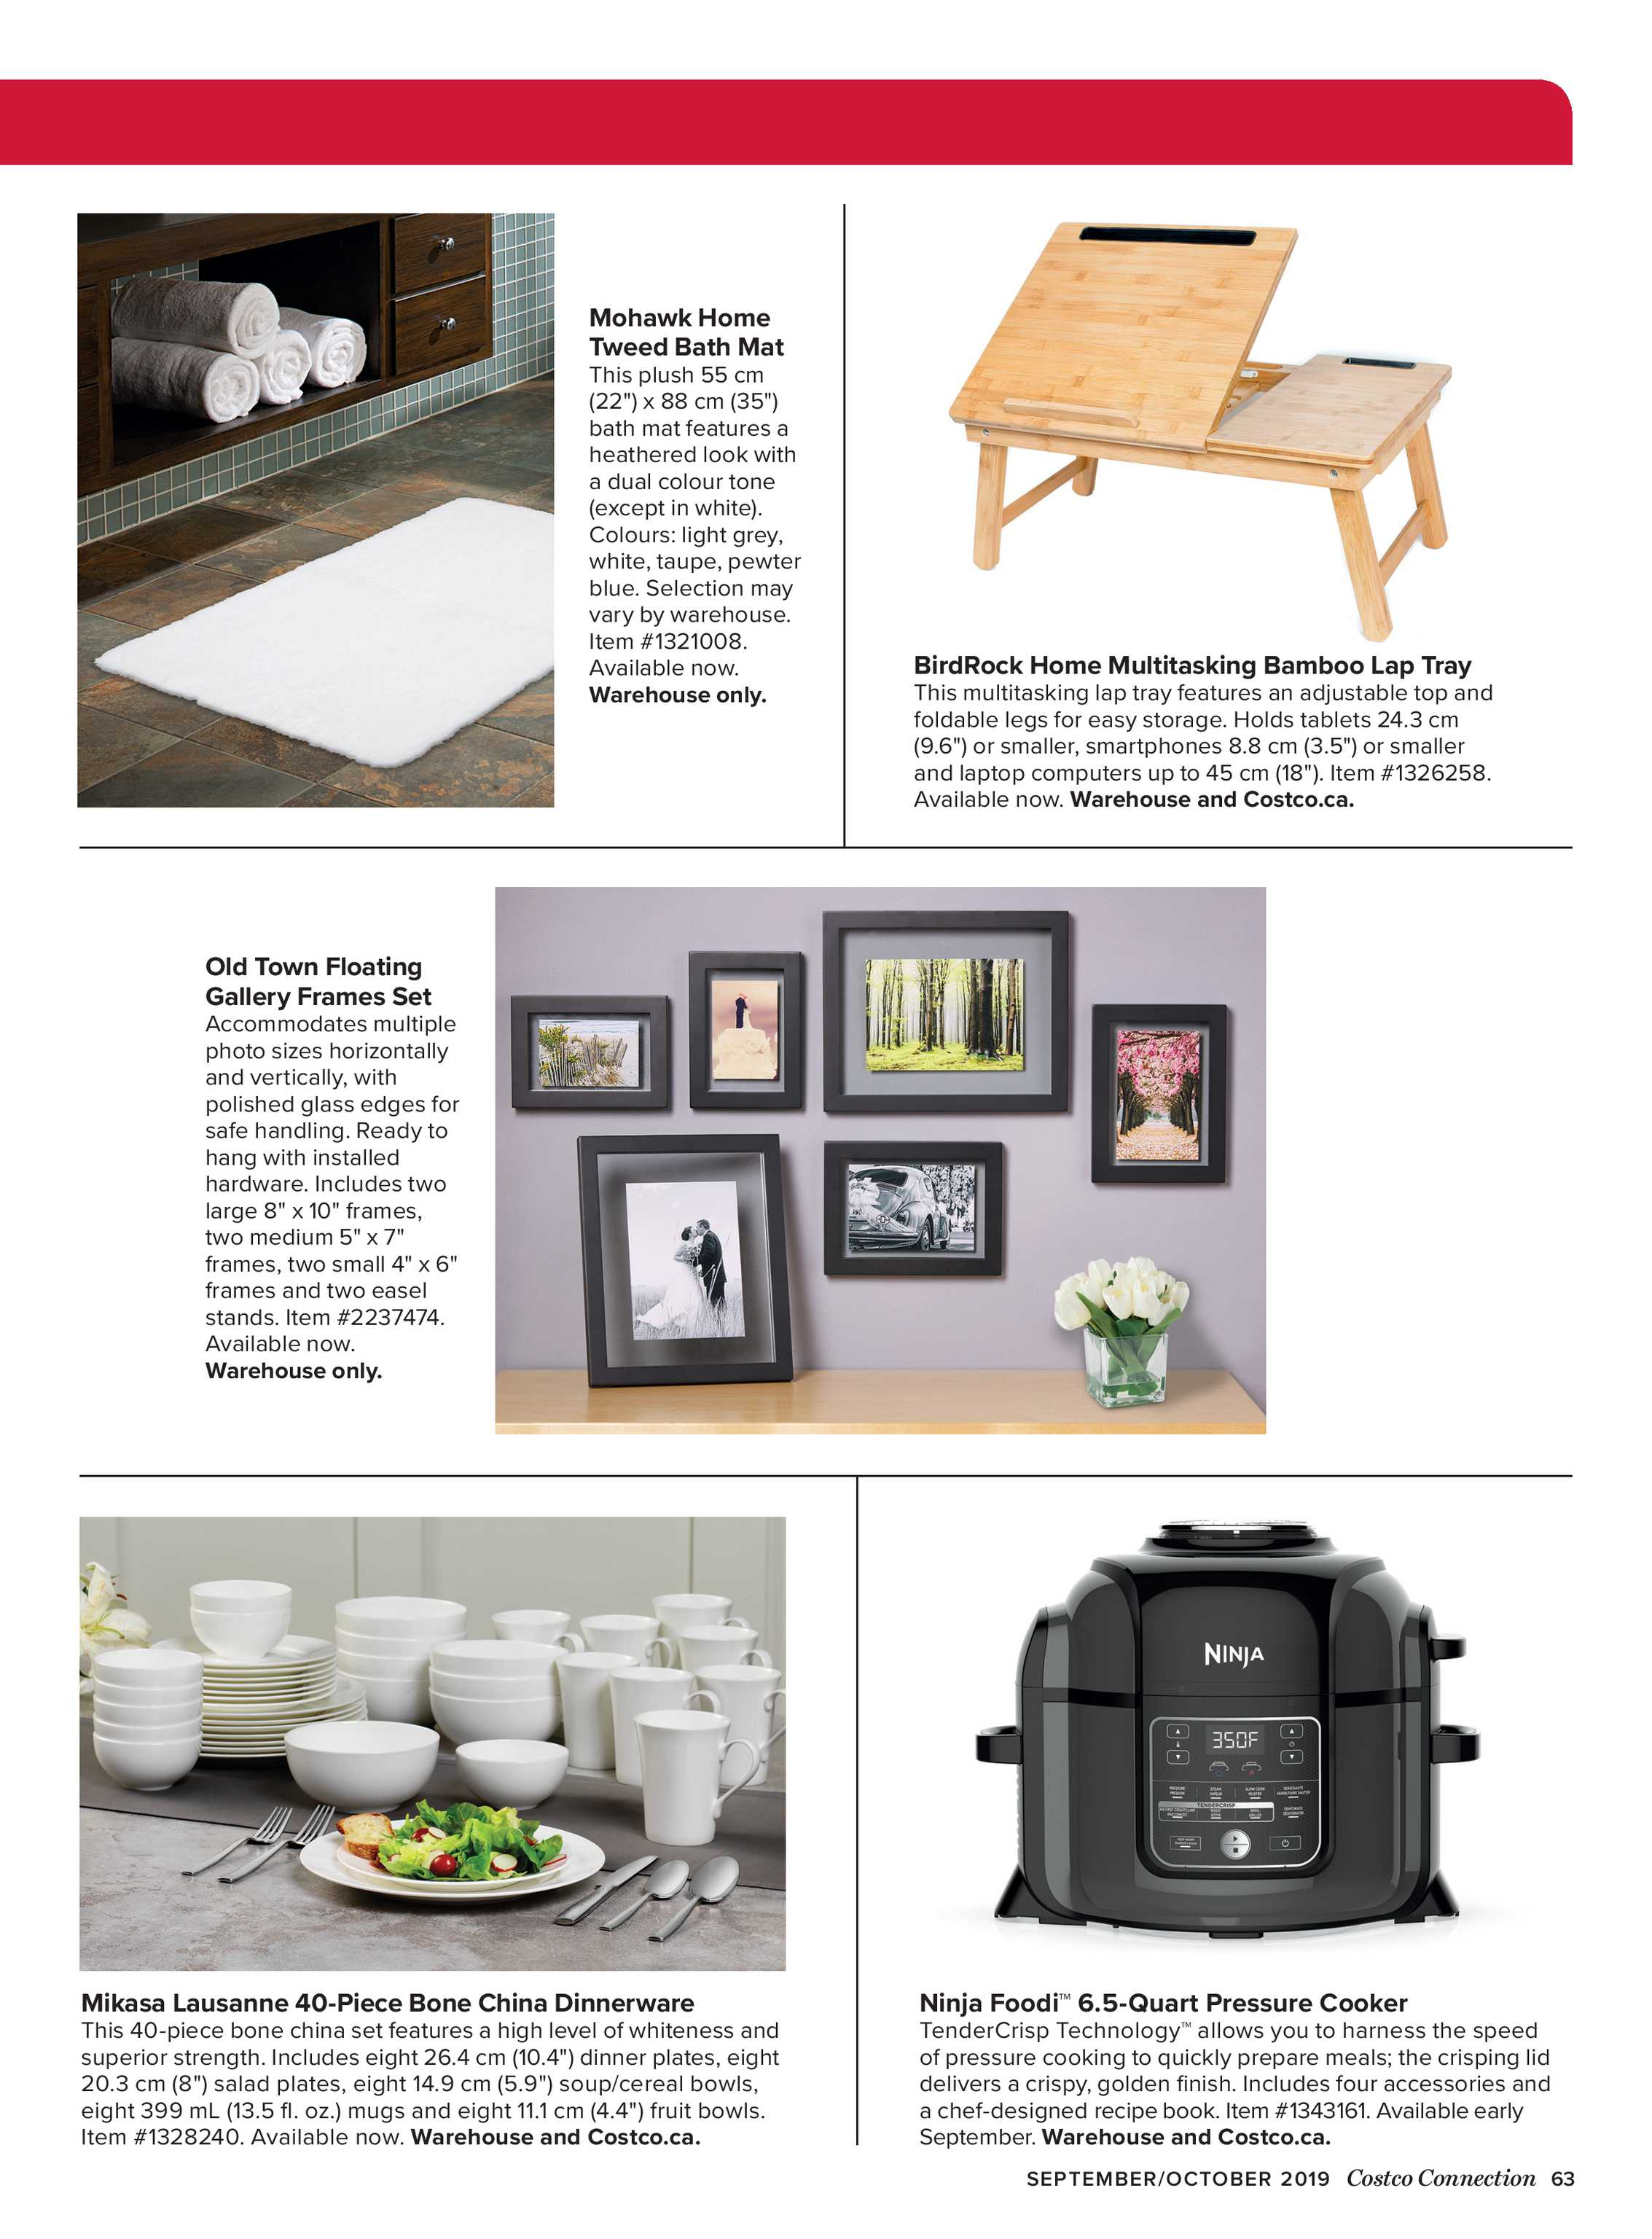 Costco Connection - September/October 2019 - page 64